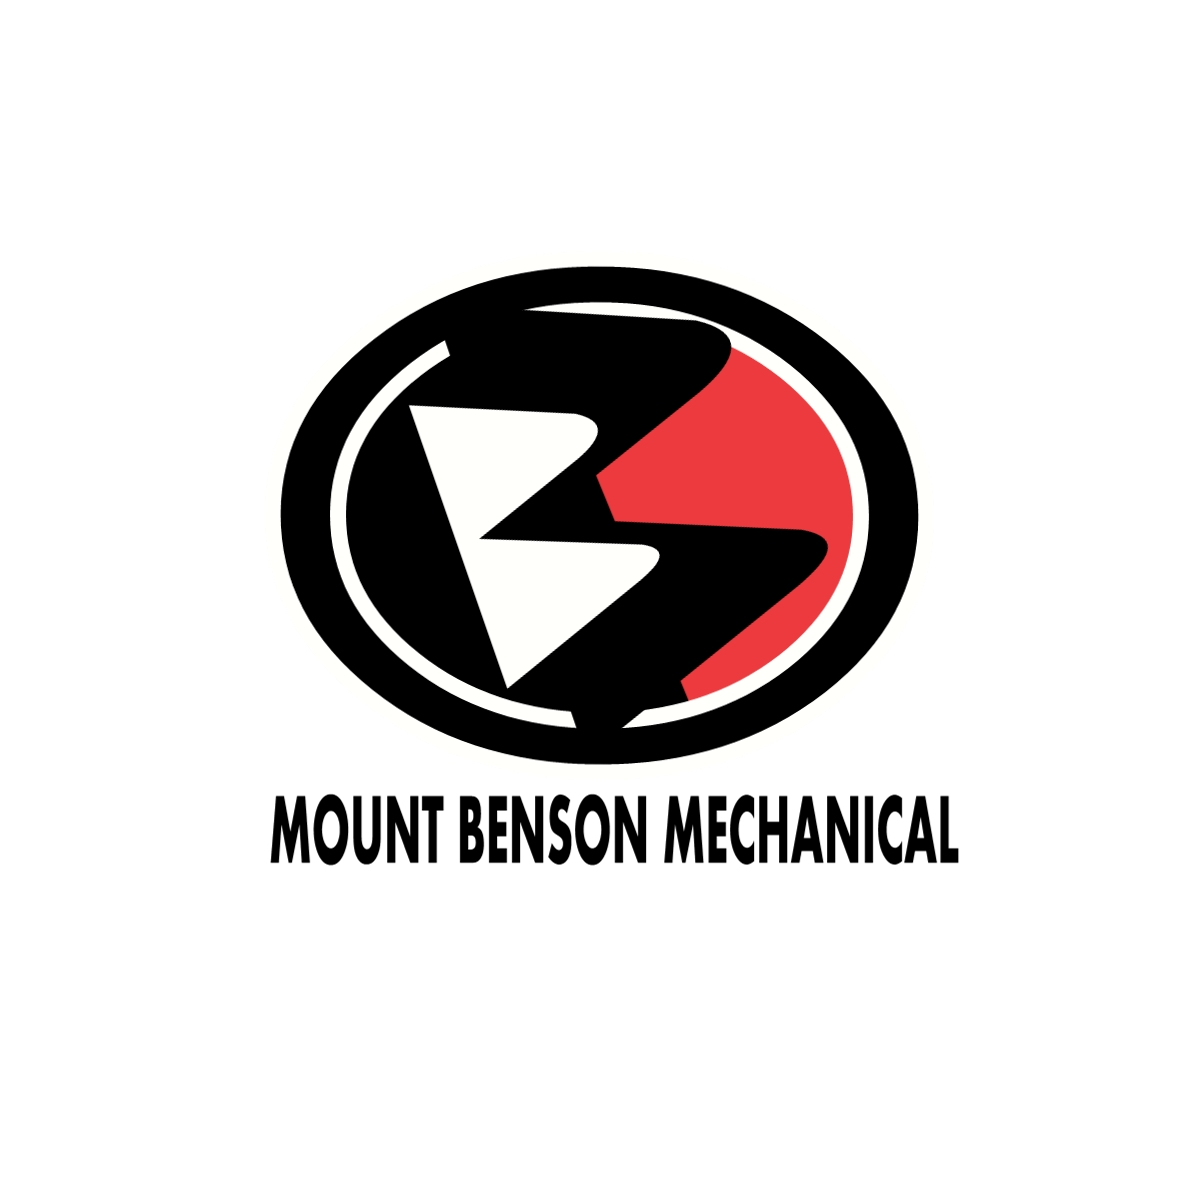 Mechanic logo design - photo#11